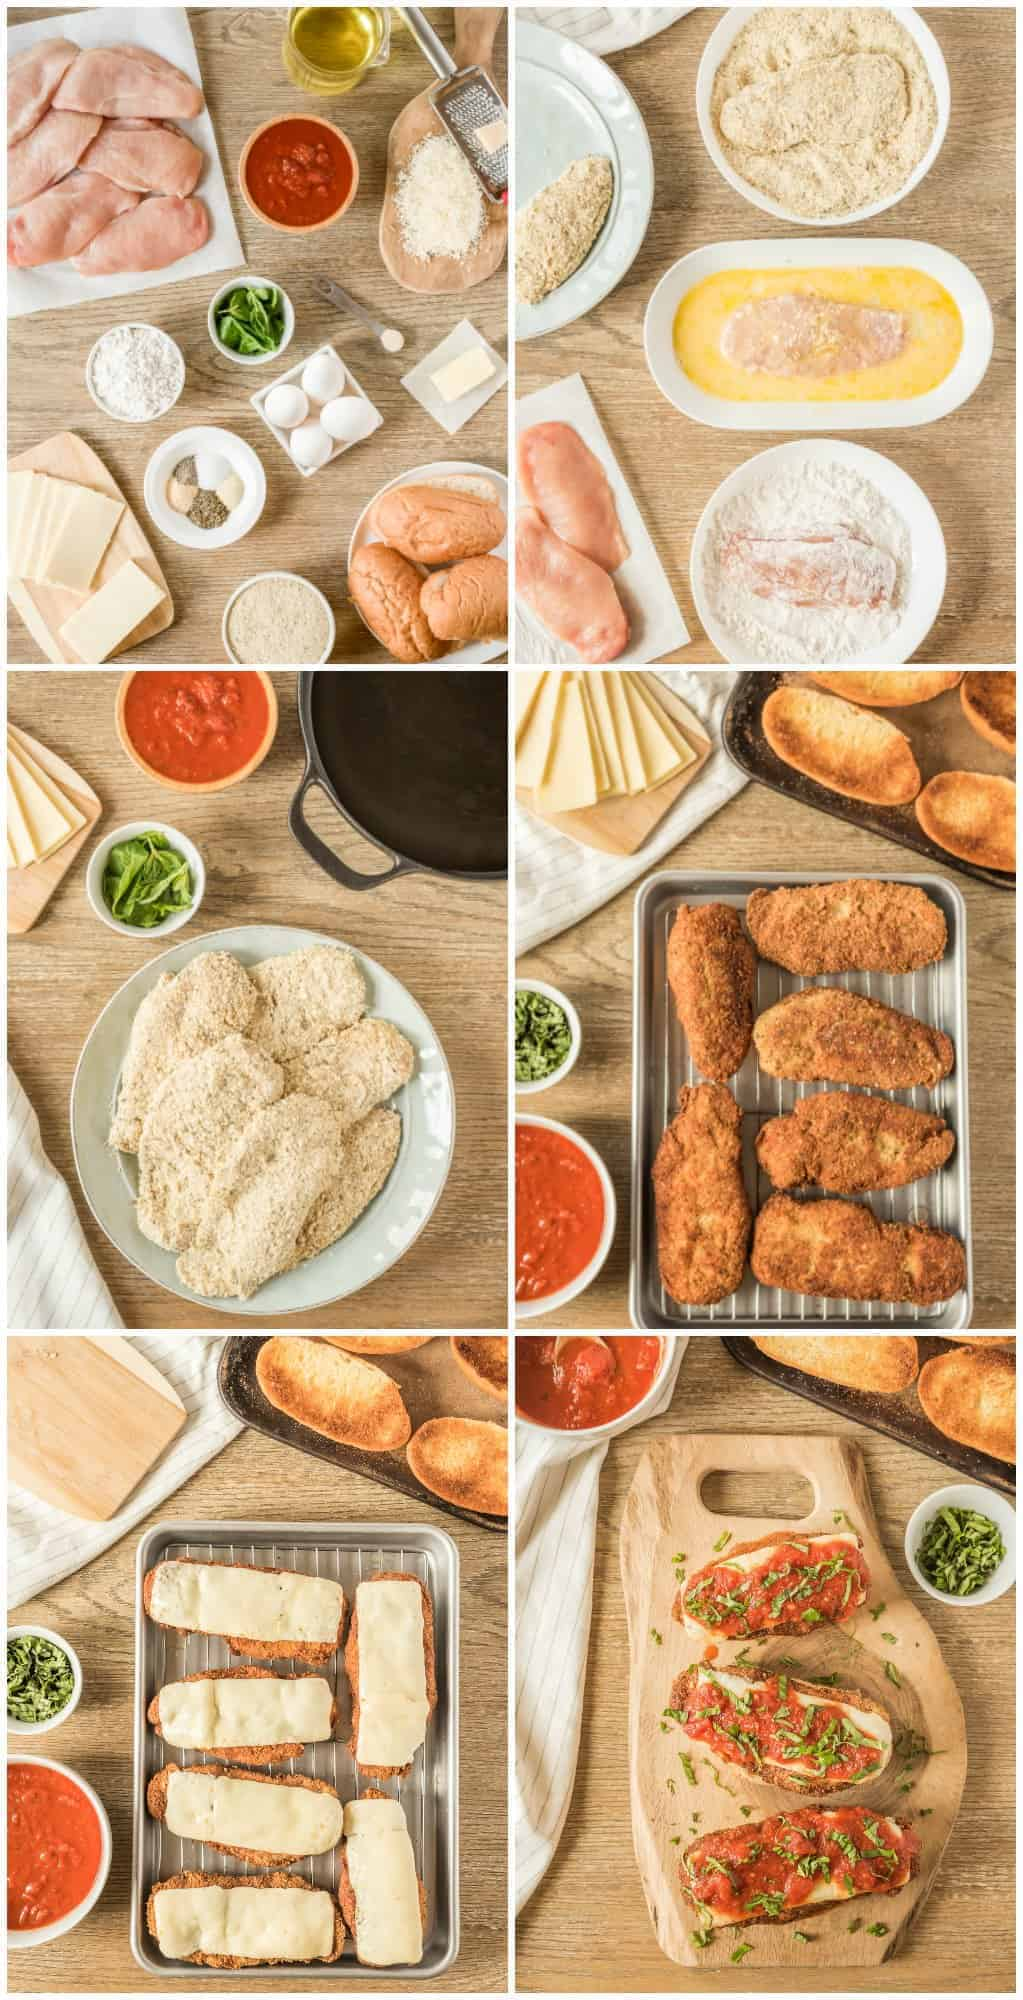 step by step photos of how to make chicken parmesan sandwiches